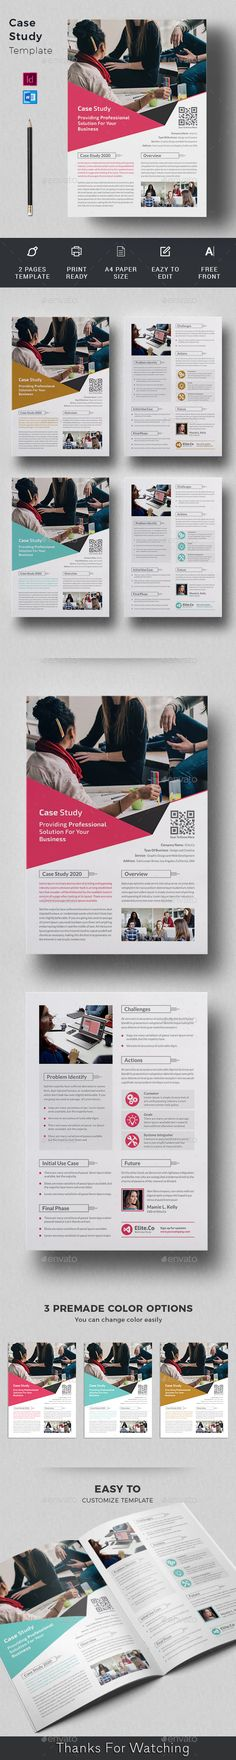 Buy Case Study Template by telaarte on GraphicRiver. Case Study Flyer Case Study Flyer Template suitable for presenting your case studies in a professional way. Case Study Template, Page Template, Flyer Template, A4 Paper, Paper Size, Printed Portfolio, Change Image, Editorial Design, Logo Templates